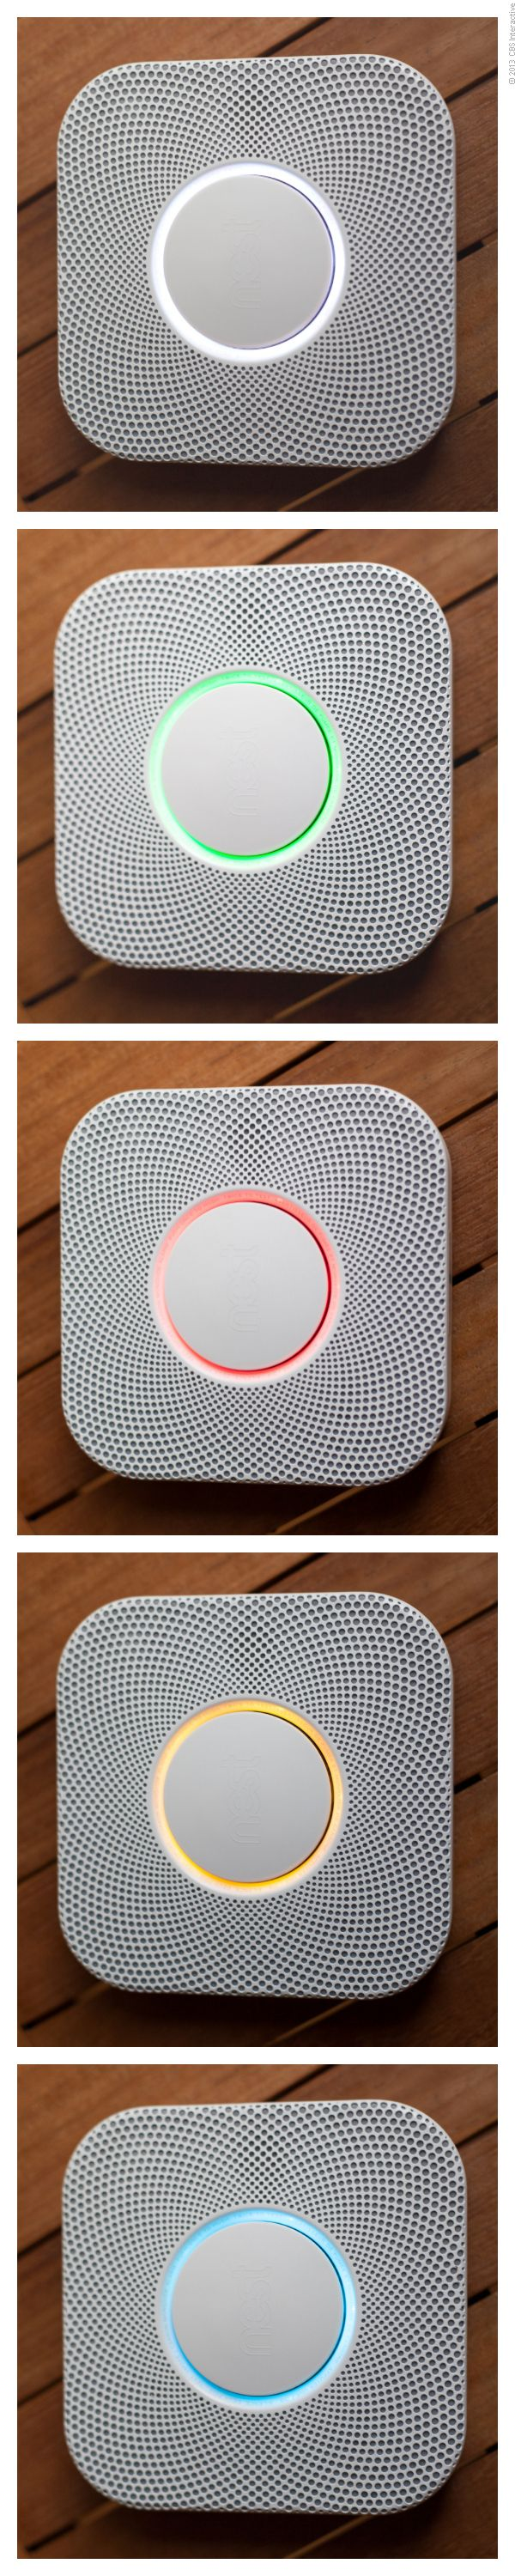 how to connect nest smoke detector to wifi